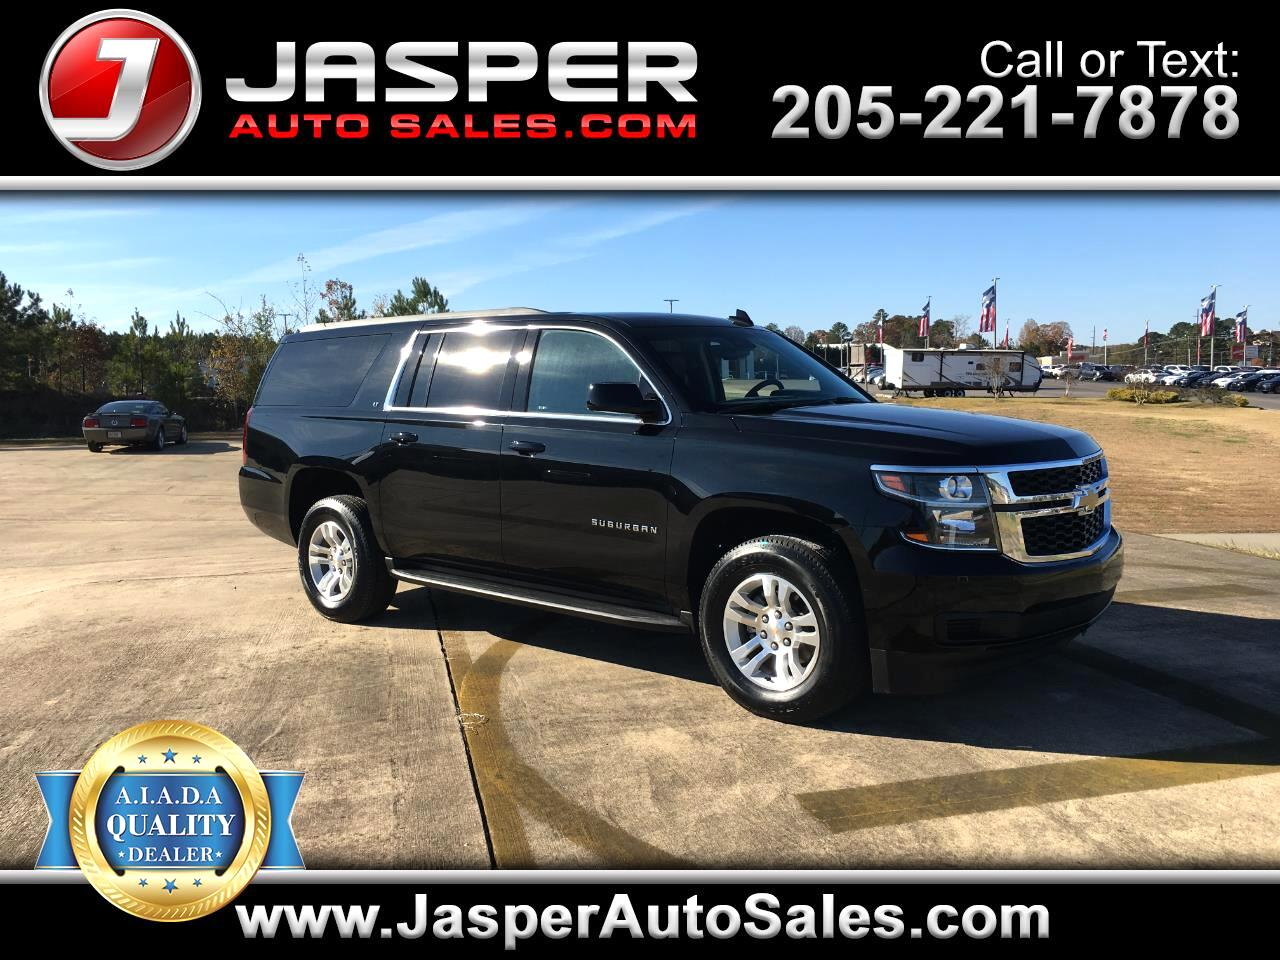 buy here pay here cars for sale jasper al 35501 jasper auto sales select